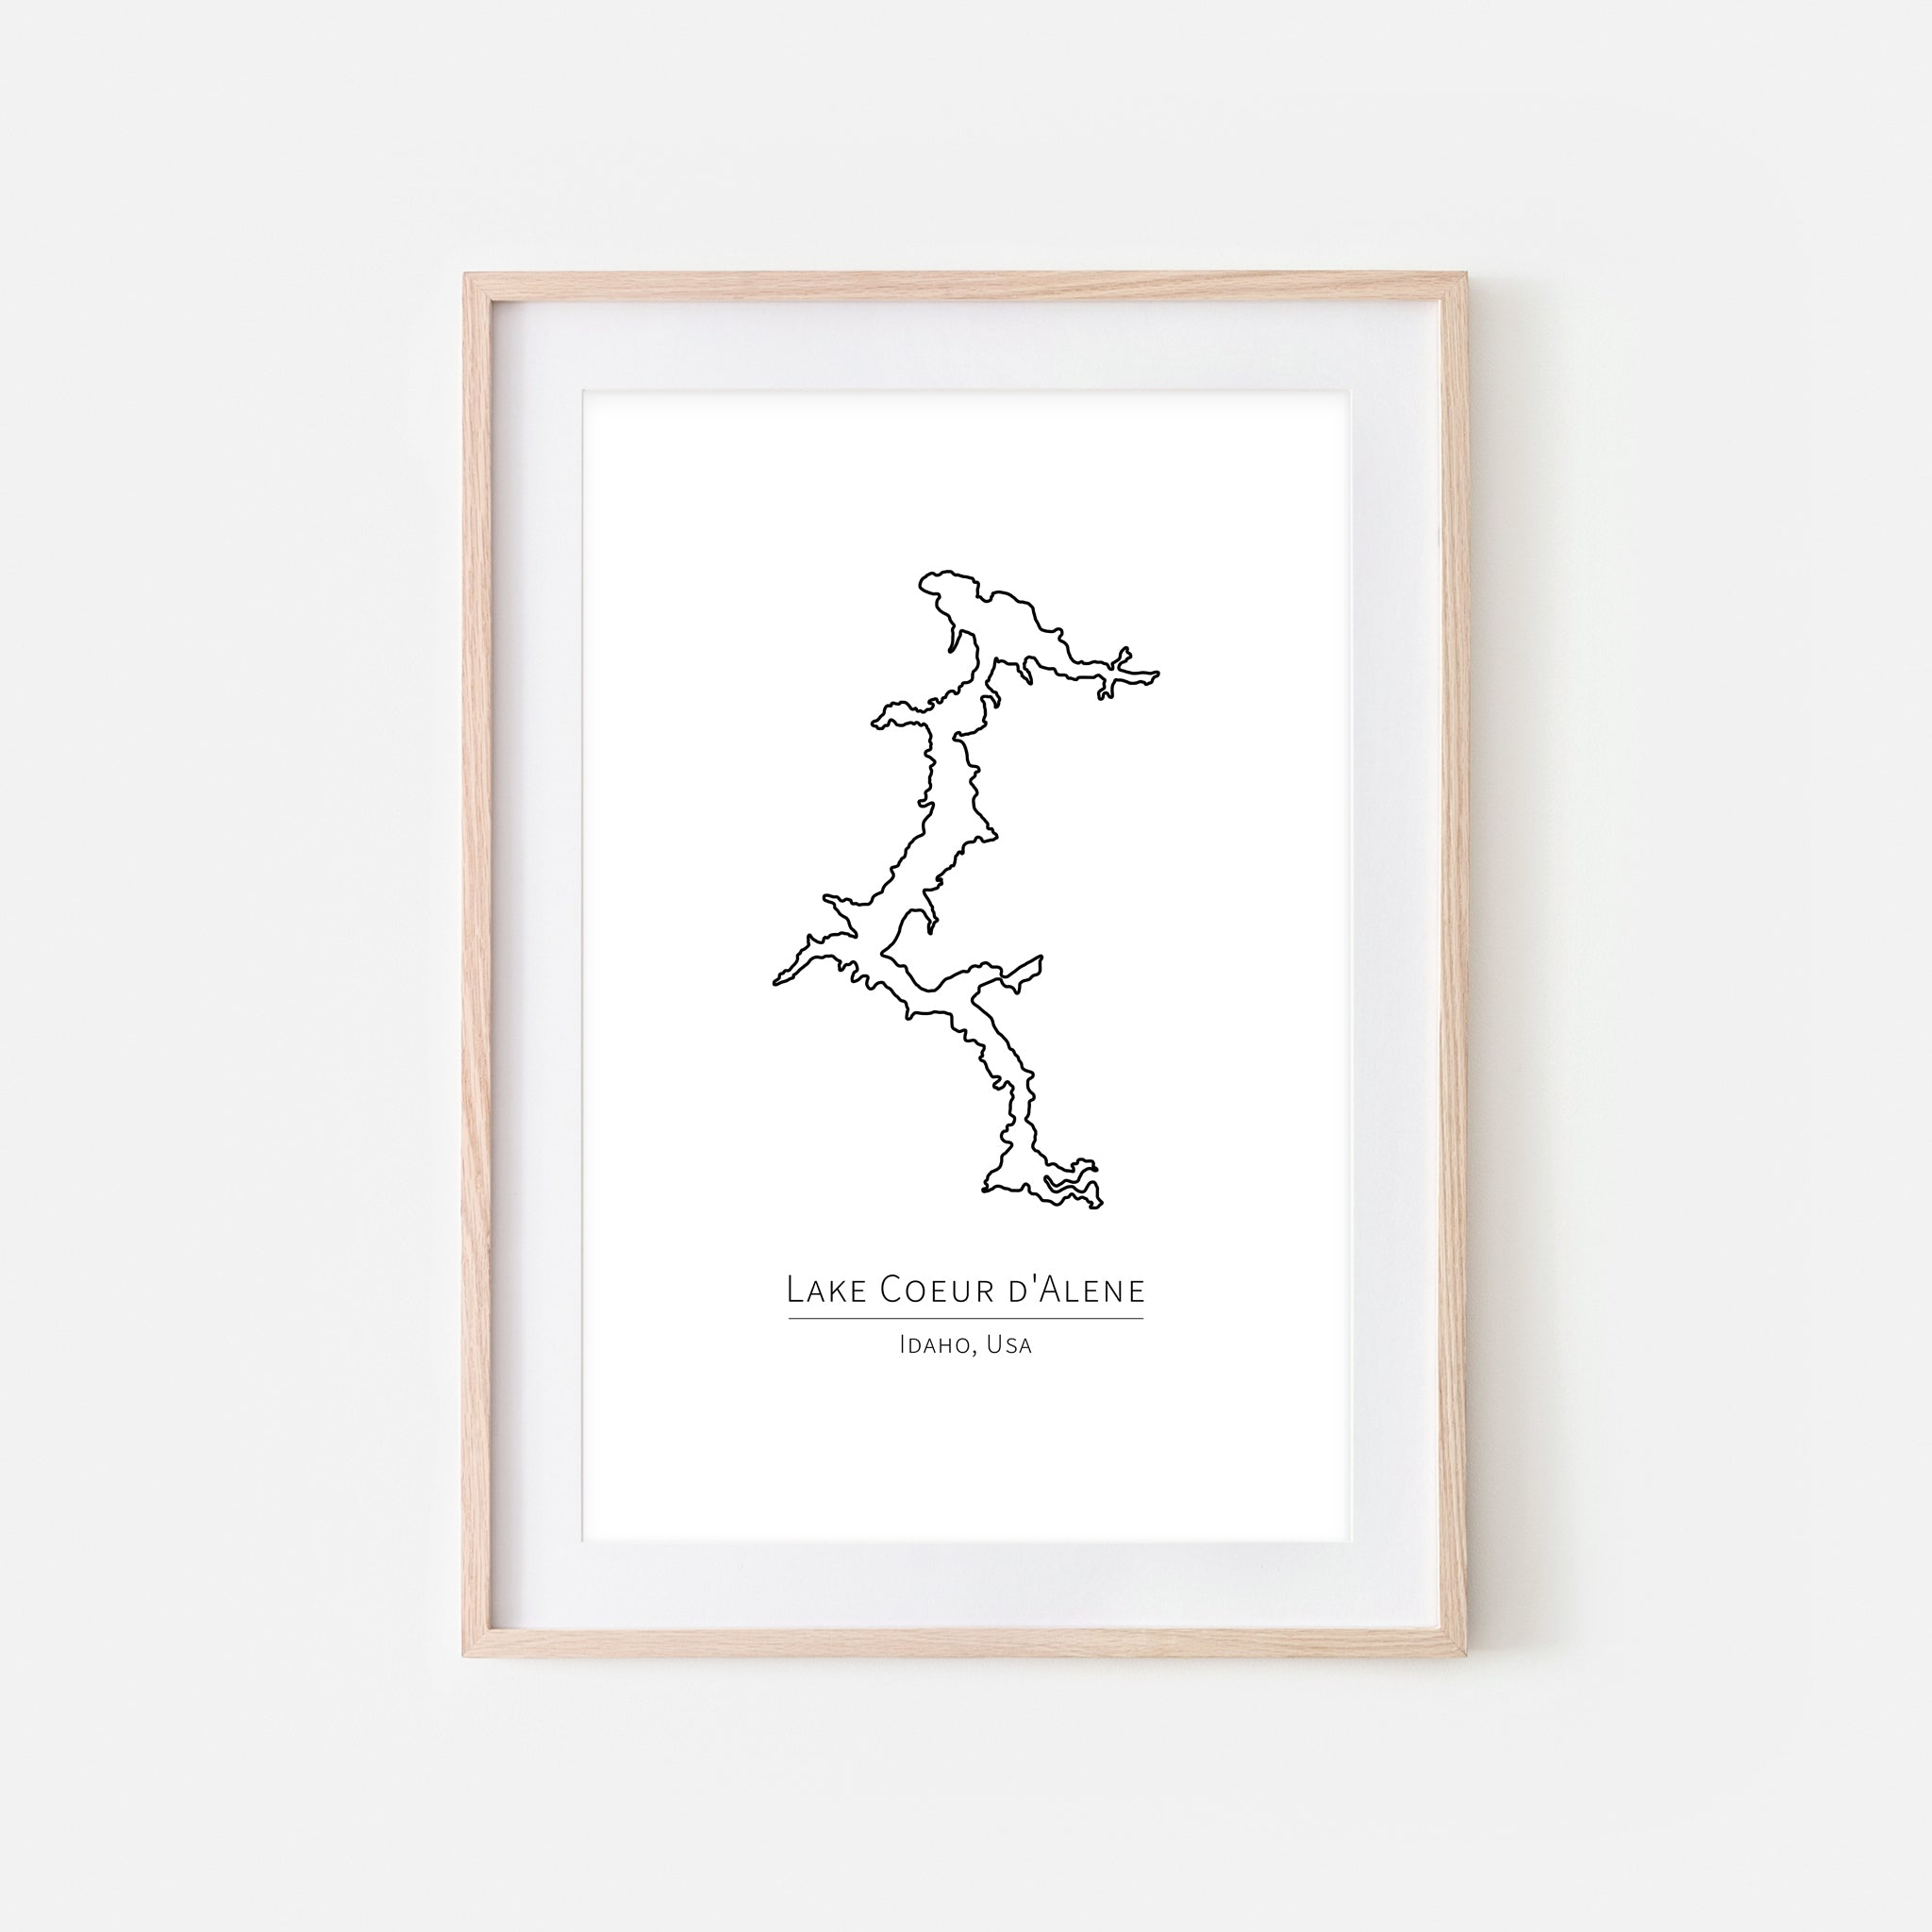 Lake Coeur d'Alene Idaho Wall Art - Minimalist Map - Lake House Decor - Black and White Print, Poster or Printable Download